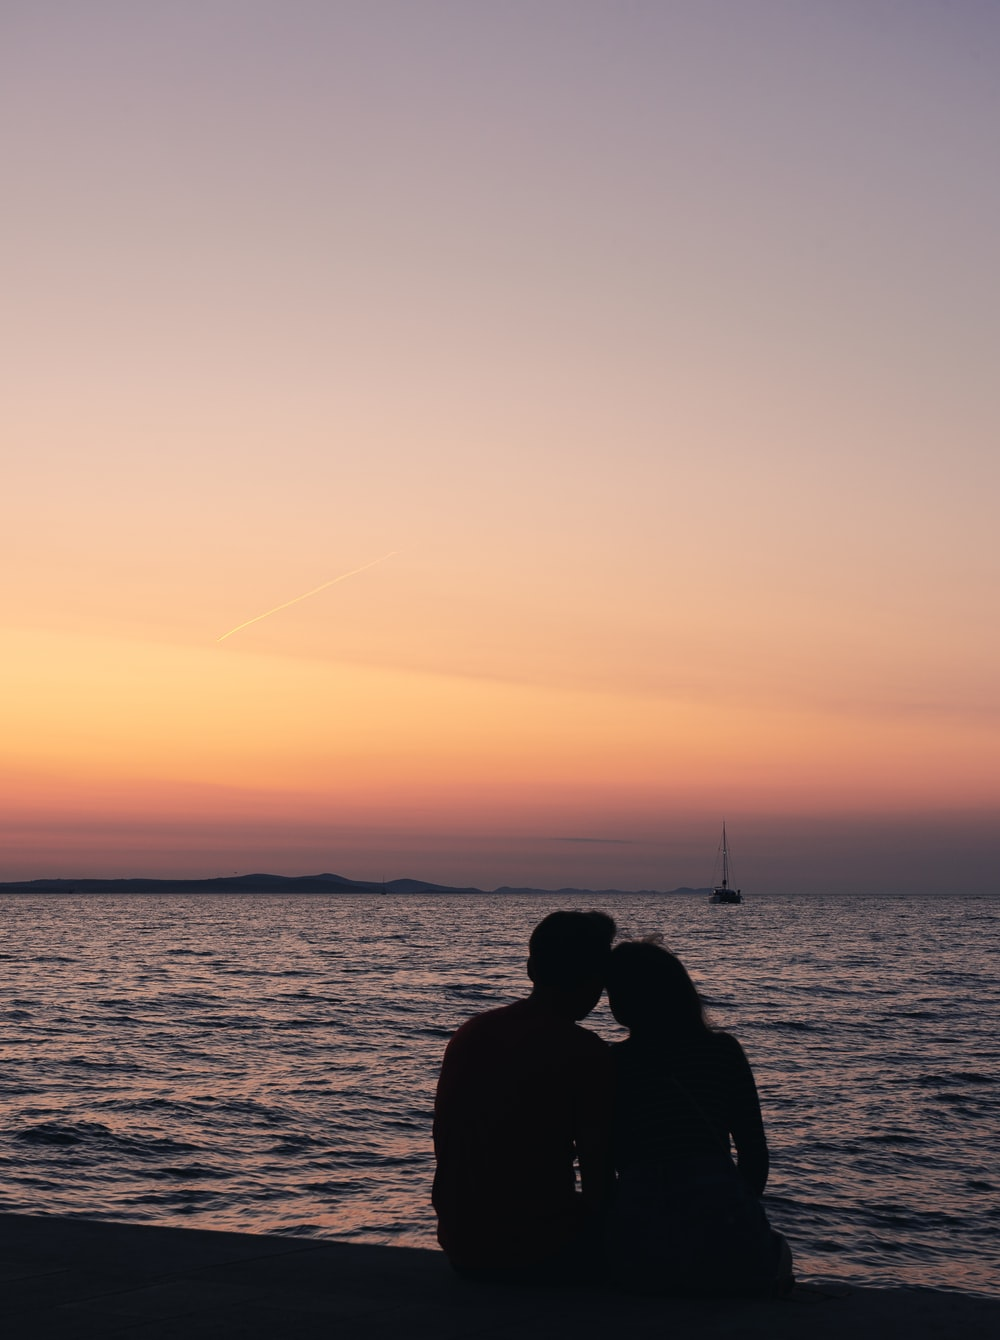 silhouette of man and woman sitting near body of water during sunset